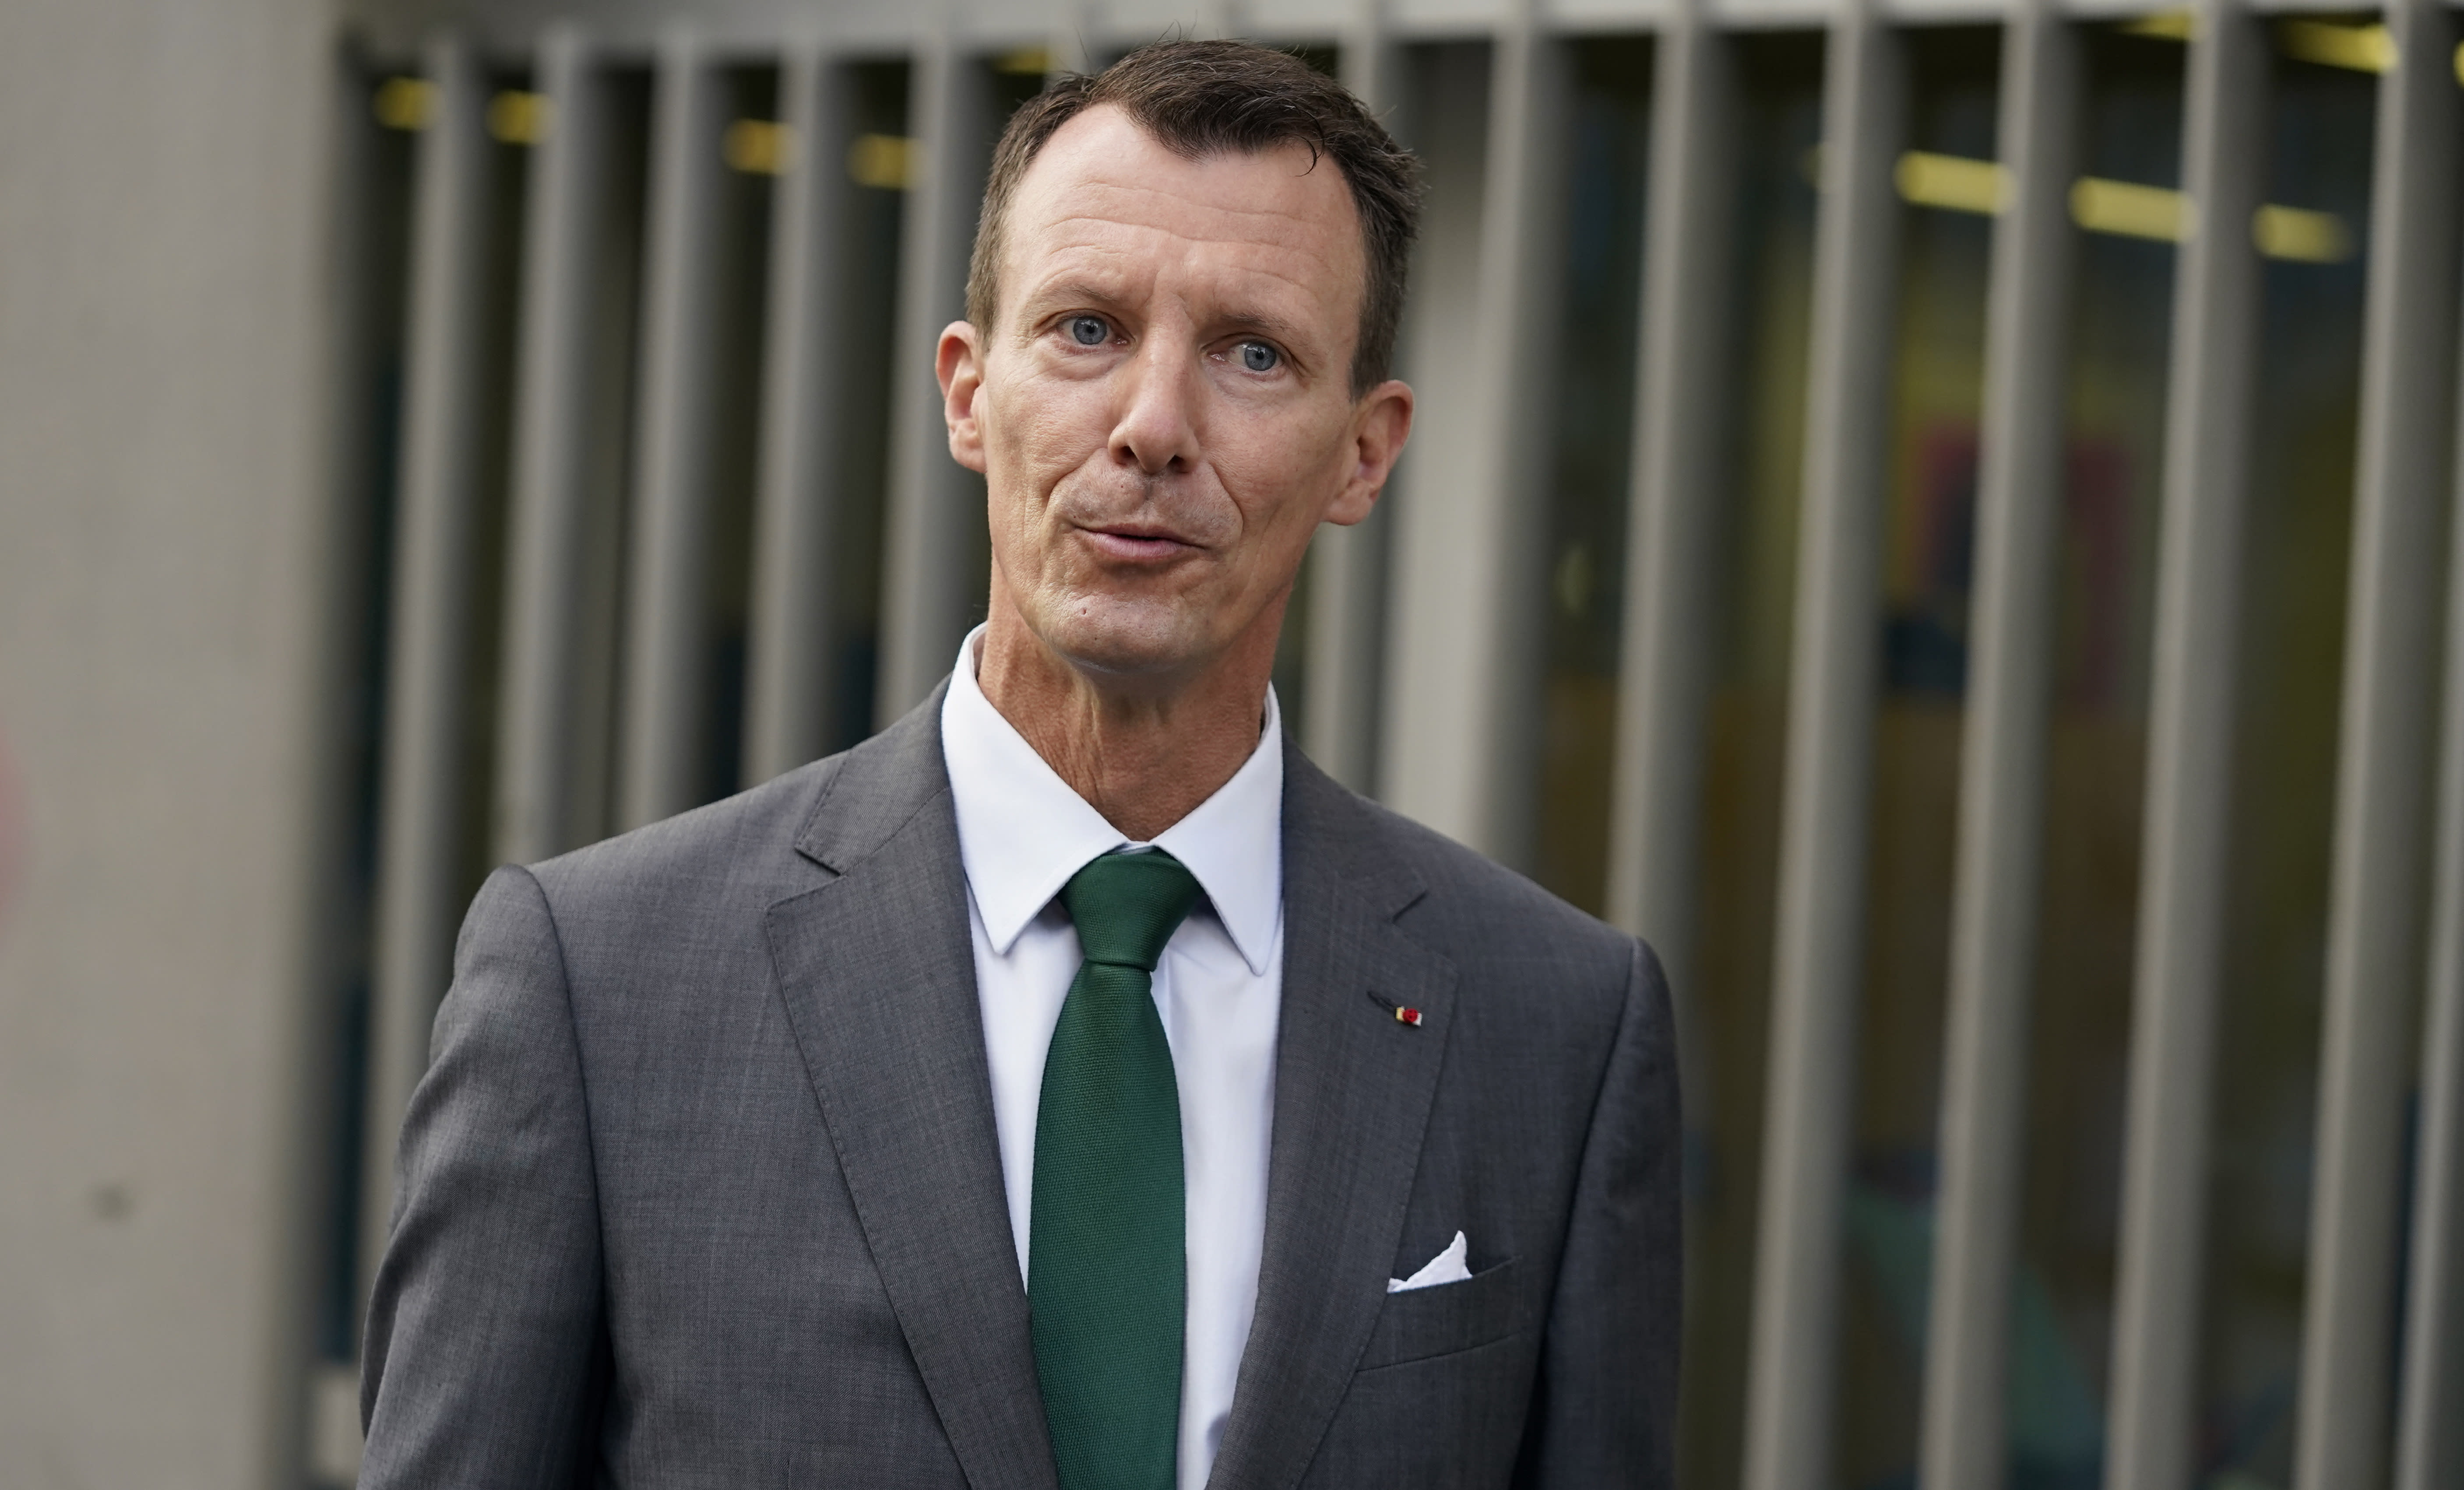 """Denmark's Prince Joachim walks to work, at the Danish Embassy in Paris, France, Friday, Sept. 18 2020. Prince Joachim, the younger son of Queen Margrethe of Denmark, who underwent an emergency surgery in France in July for a blood clot in his brain, says he is """"eager to get started"""" as he arrived for his first work day at the Danish Embassy in Paris. The 51-year-old prince spoke to reporters outside the Danish mission where he will be defense attache. Joachim was rushed to the Toulouse University Hospital on July 24. (Mads Claus Rasmussen/ Ritzau Scanpix via AP)"""